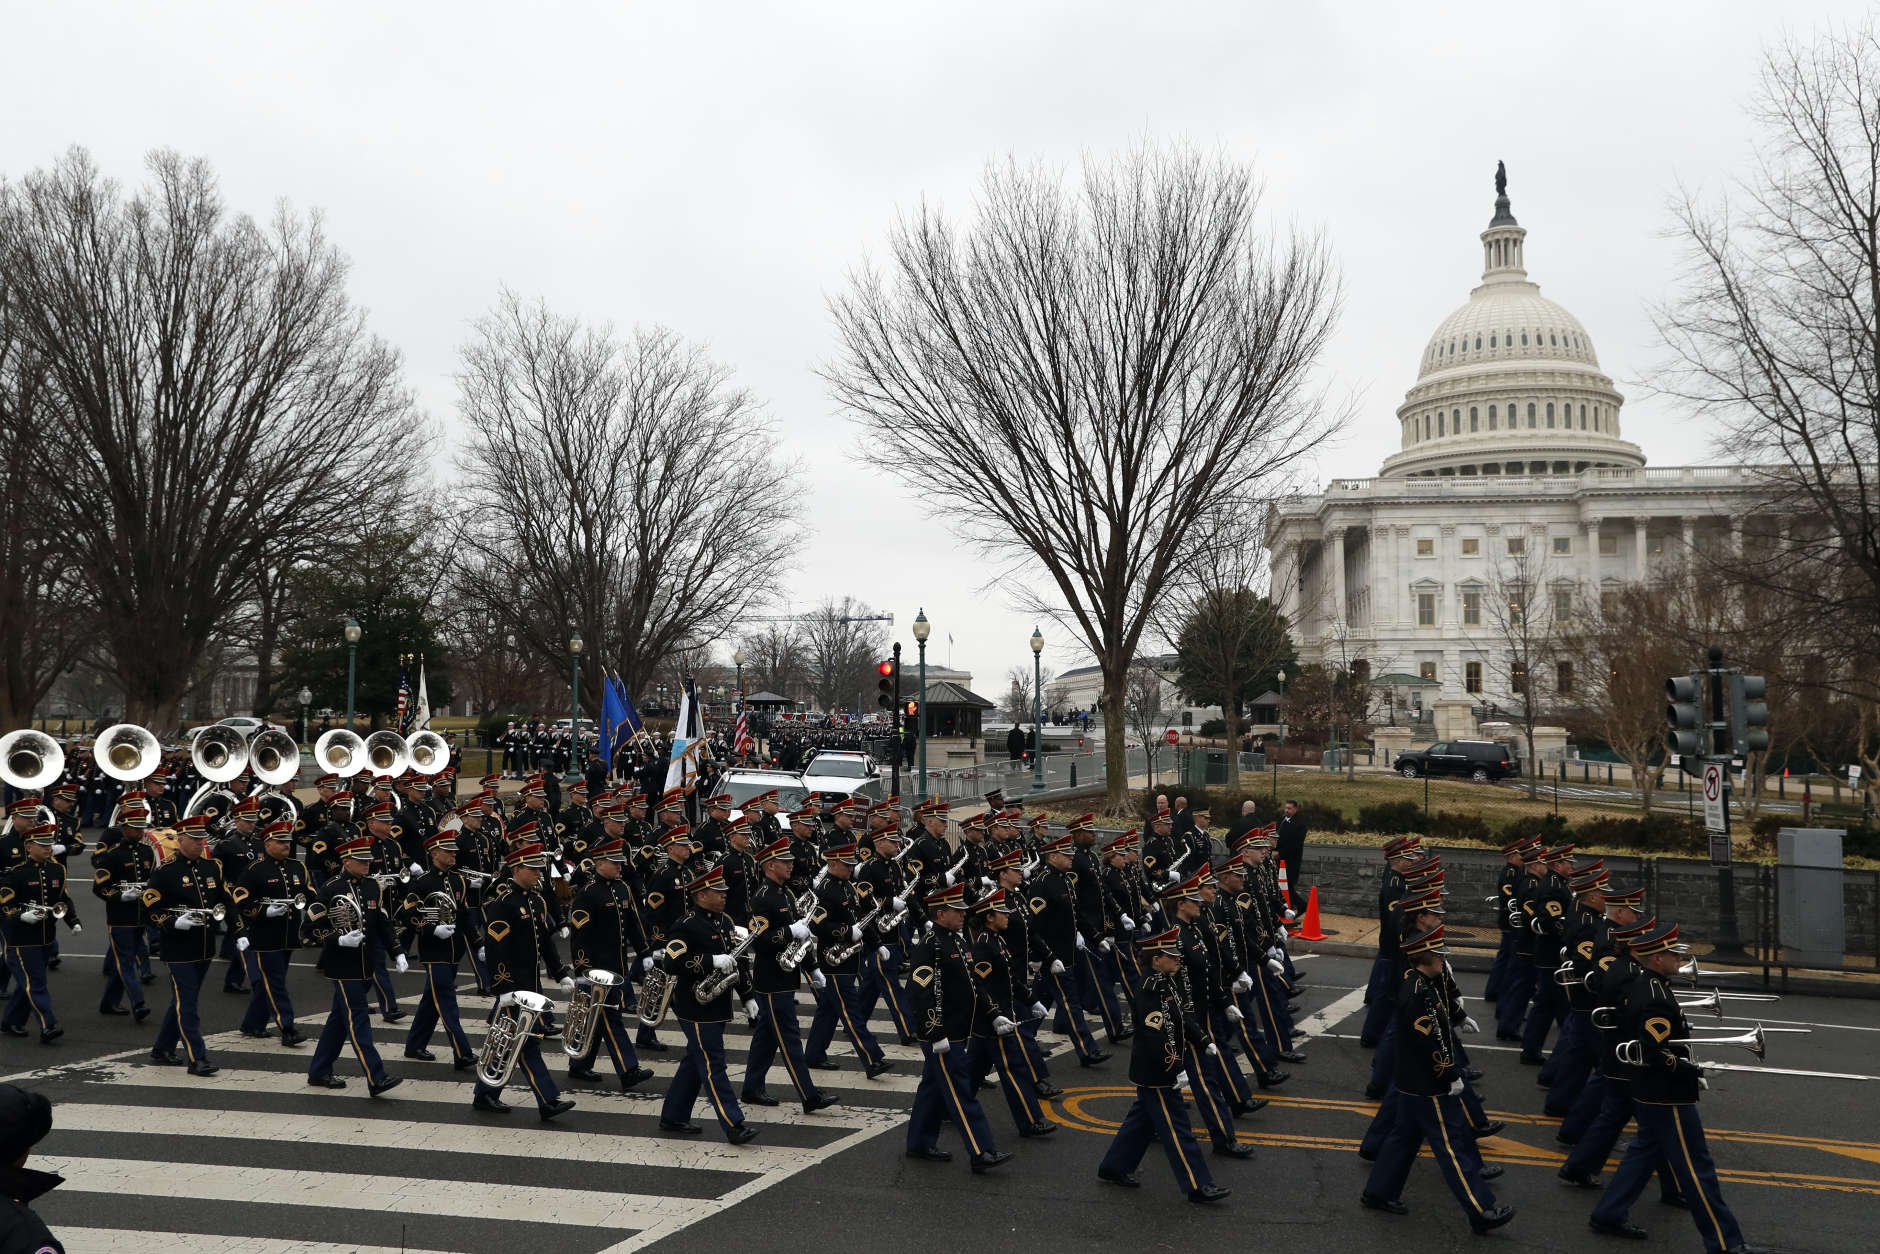 The inaugural parade steps off from the U.S. Capitol as it heads to the White House Friday, Jan. 20, 2017 in Washington. (AP Photo/Alex Brandon)